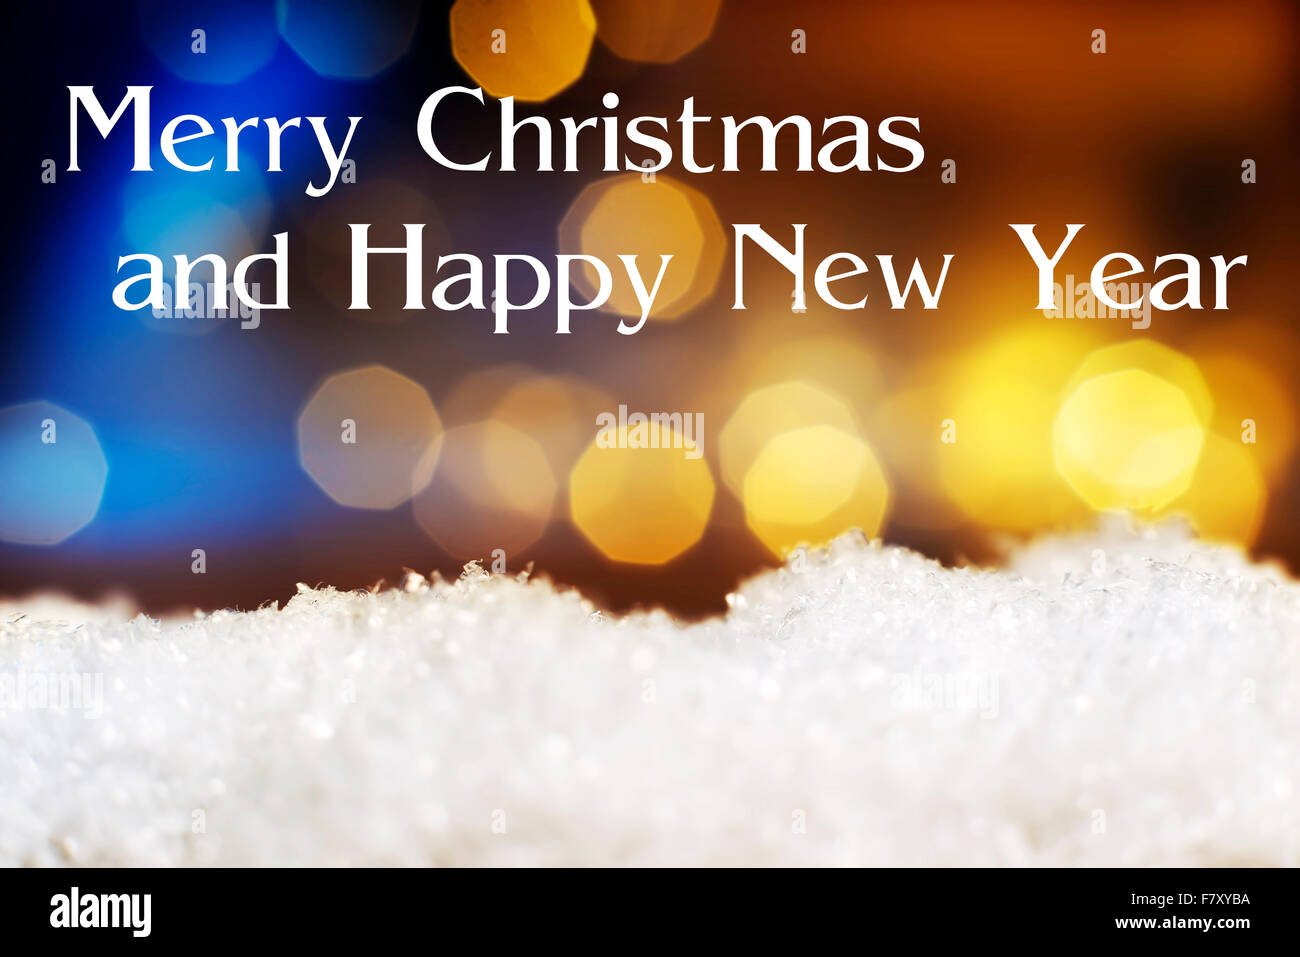 Image of artificial snow and bokeh lights in background and text Merry Christmas and Happy New Year - Stock Image